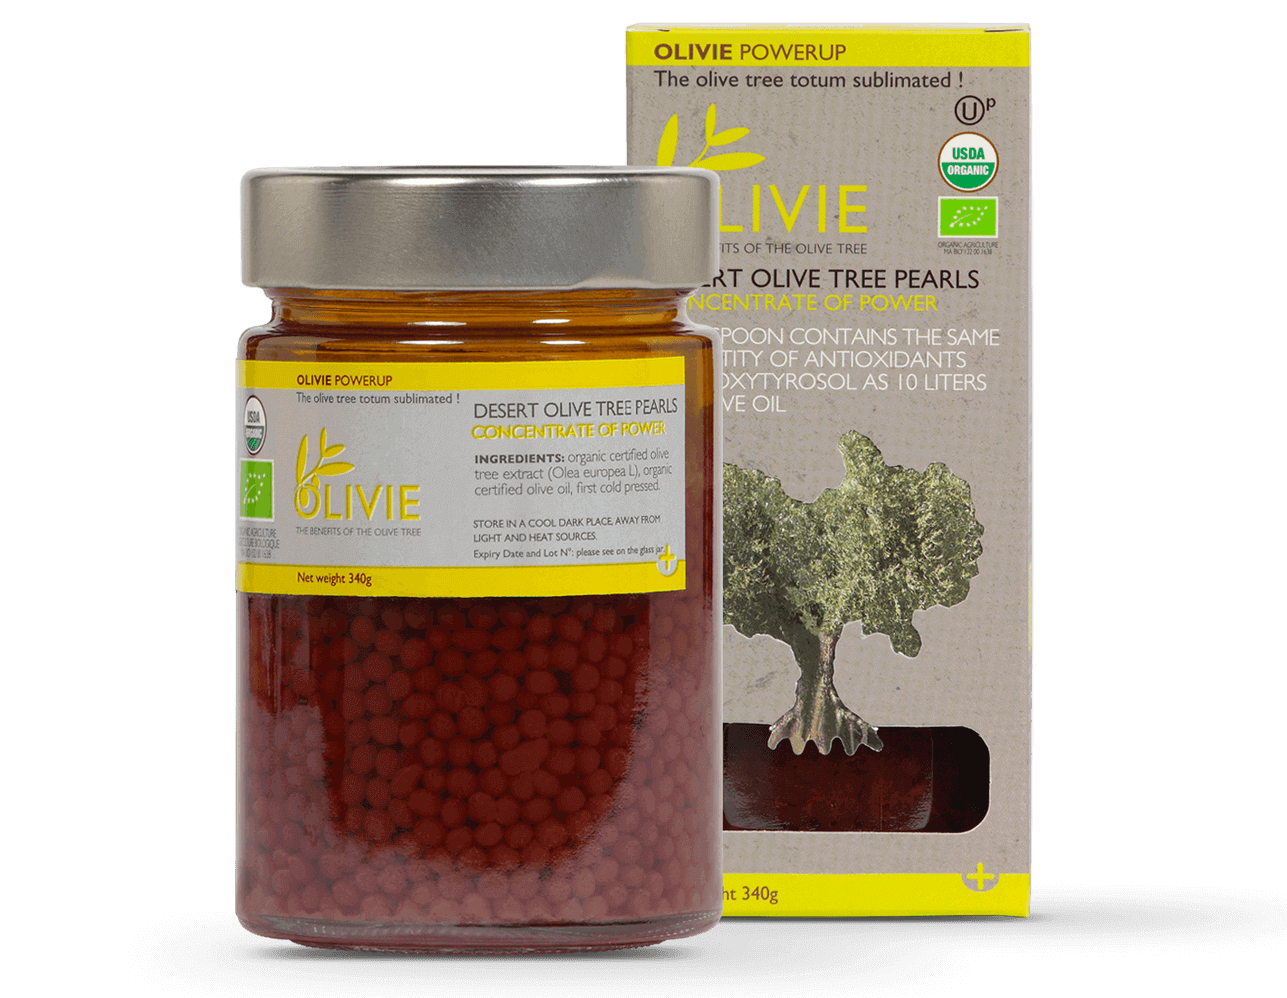 OLIVIE POWERUP pearls are immune boosting foods recommended by Dr Gundry. Super packed in polyphenols.